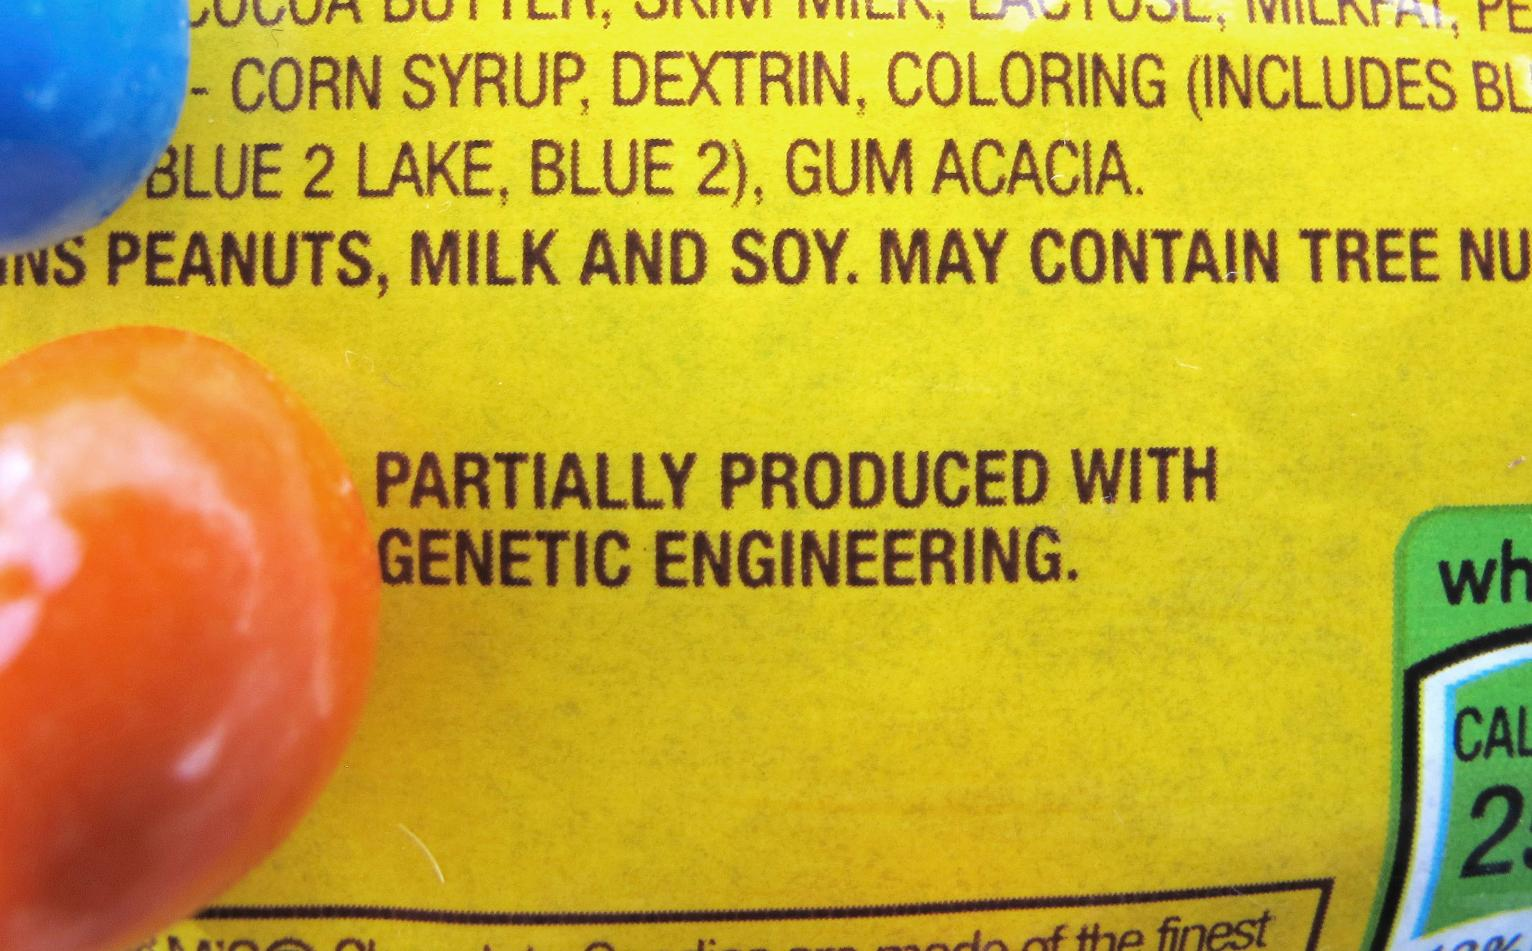 Uncertainty looms as Vermont becomes 1st state to label GMOs   U.S. News   US News